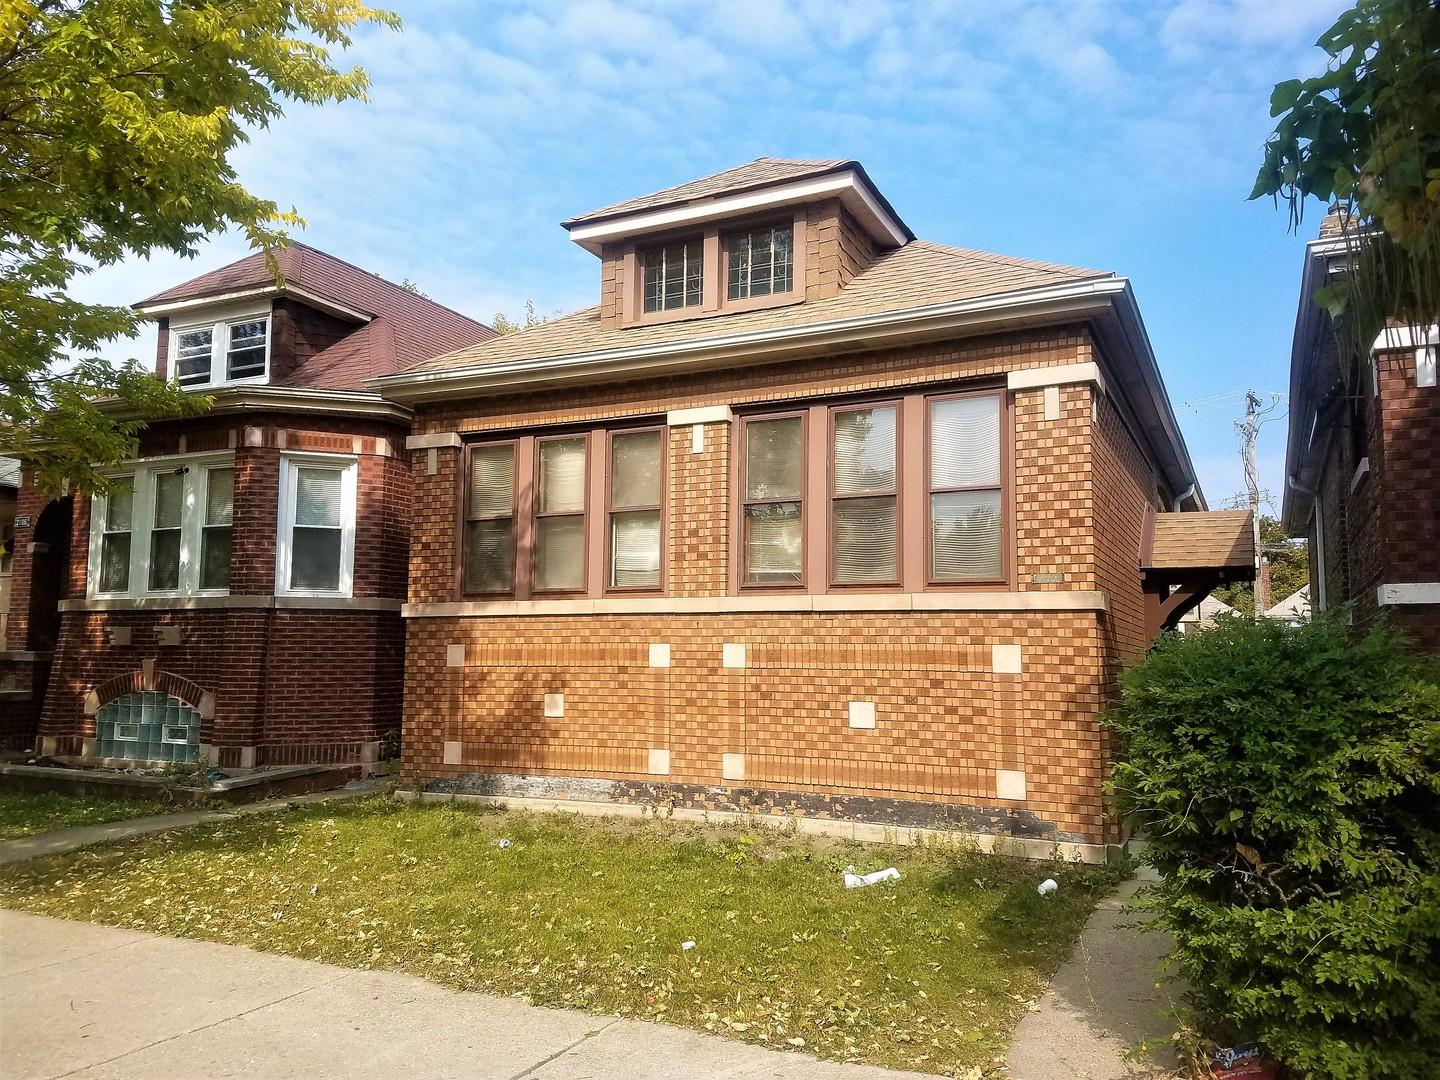 2102 W 71st Street, Chicago, IL 60636 - #: 10903054